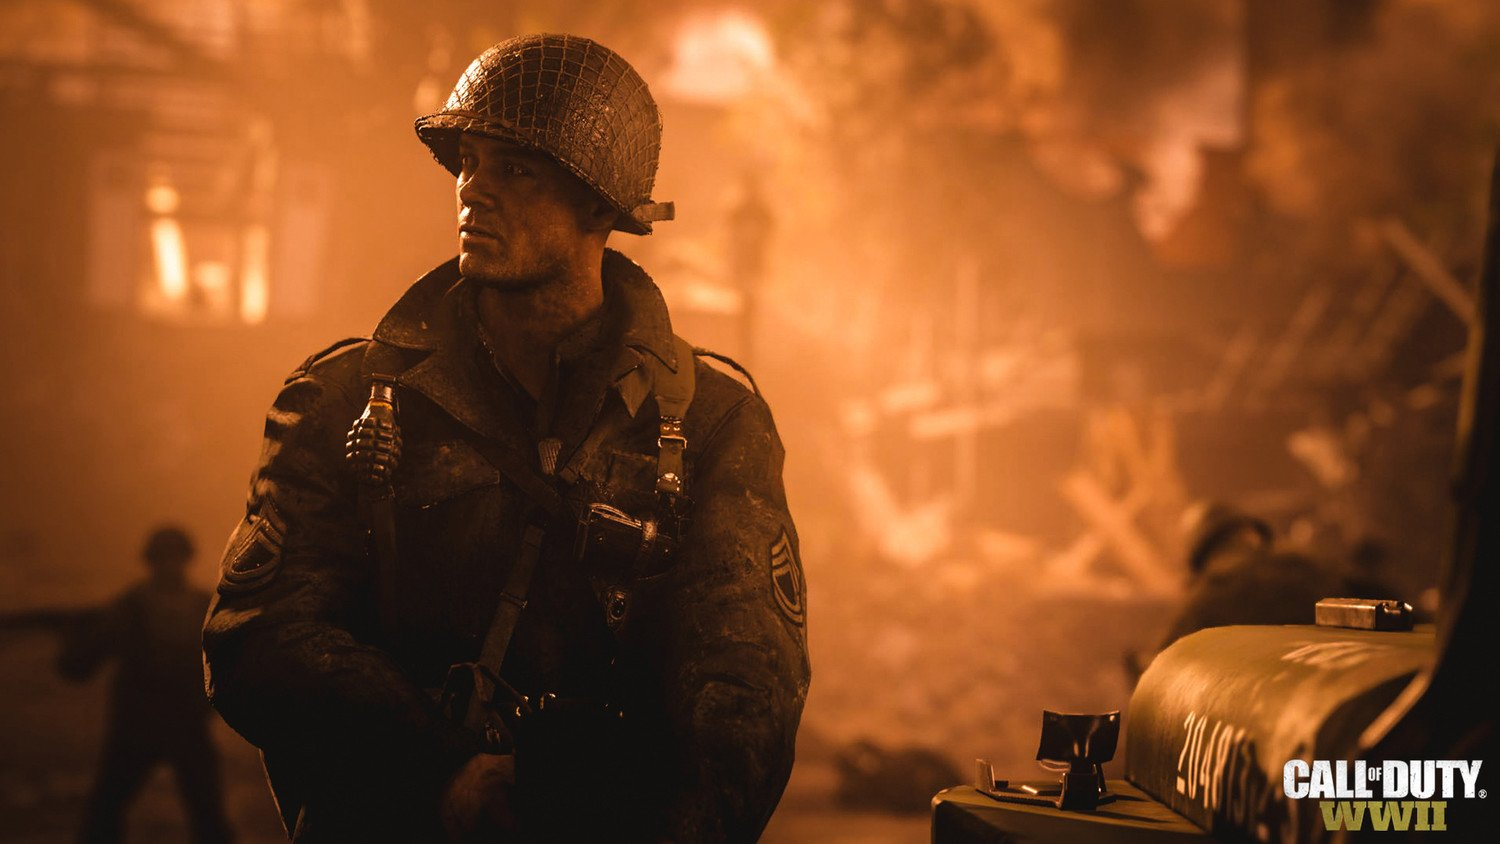 Screenshot for the game Call of Duty: WWII (2017) download torrent RePack